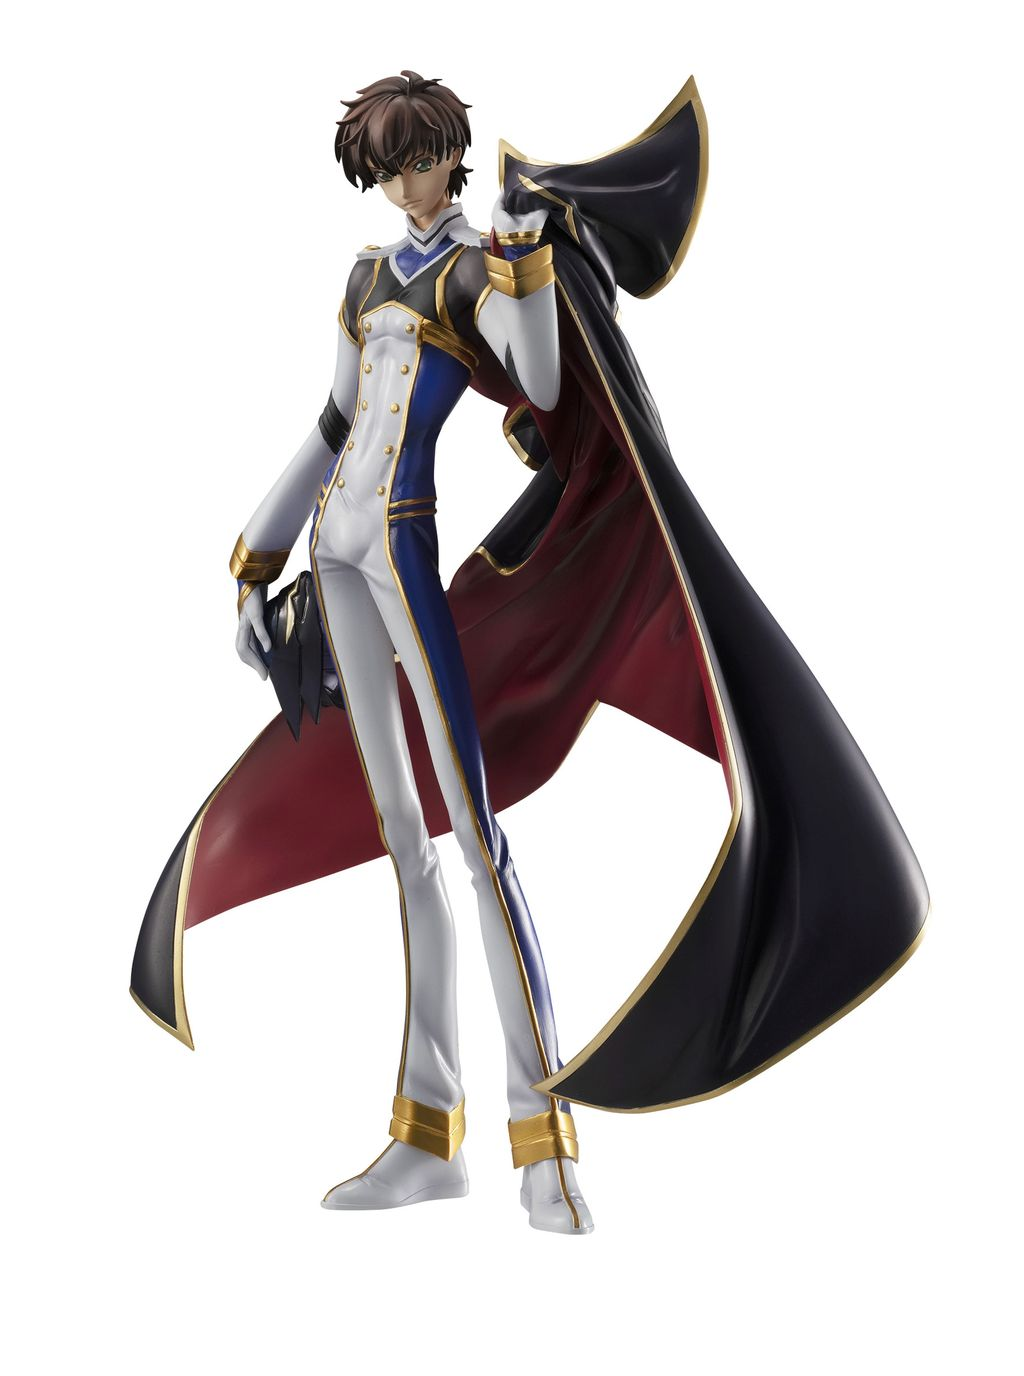 G.E.M. Series: Code Geass: Lelouch of the Re;surrection Suzaku Kururugi Pilot Ver.